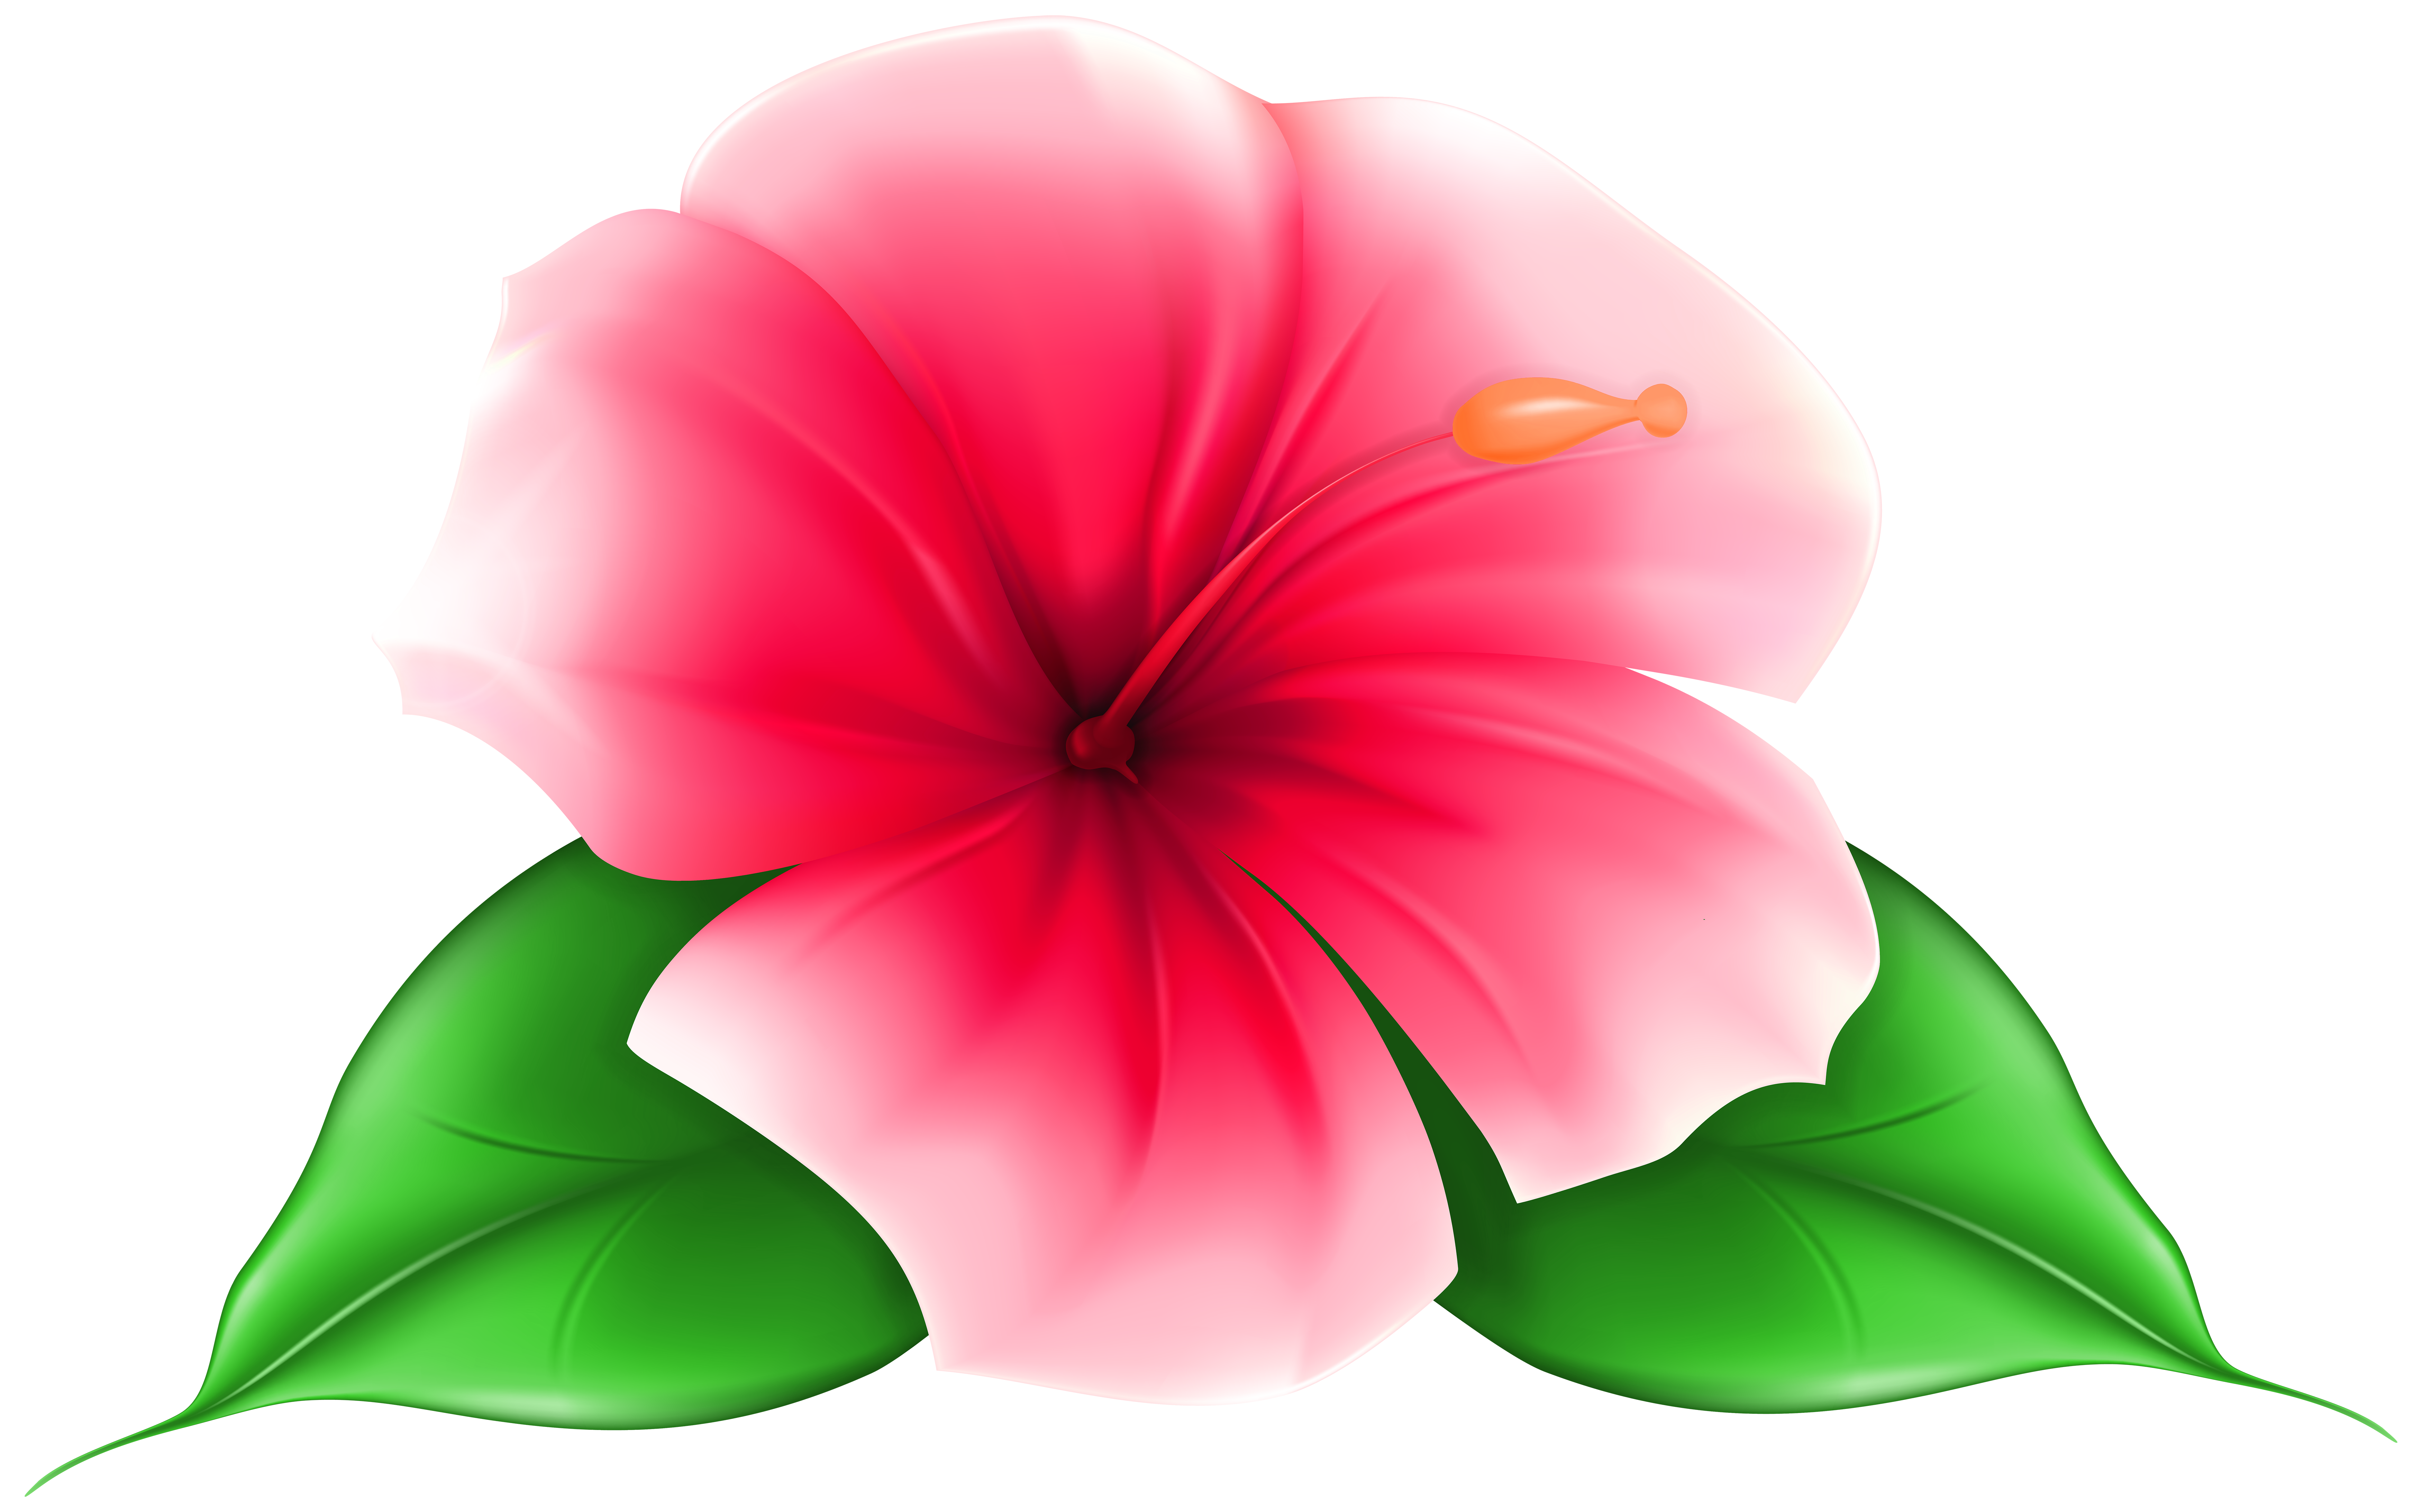 Transparent Flower Clipart.